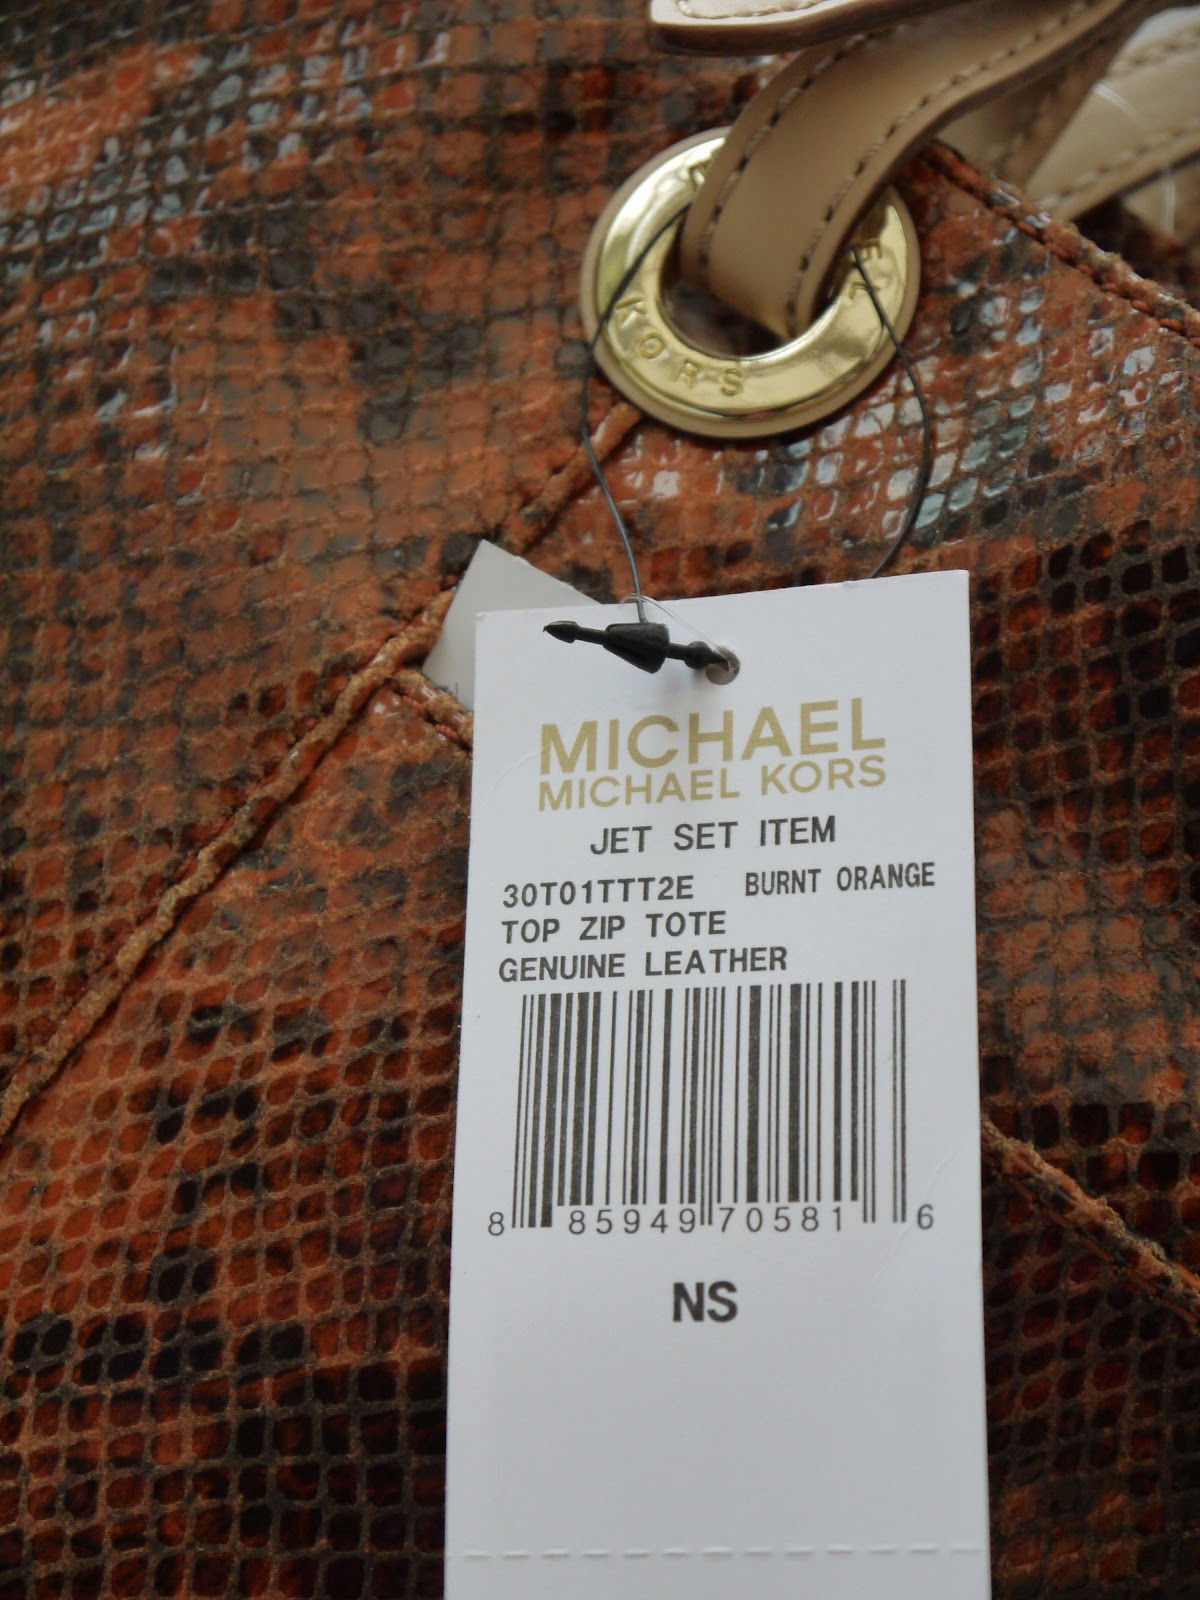 8c048af37dc Stunning MICHAEL Michael Kors Jet Set Tote Bag in burnt orange. Luxury  Genuine Leather.  SOLD SOLD SOLD  Email me at mummyandco gmail.com if  interested.